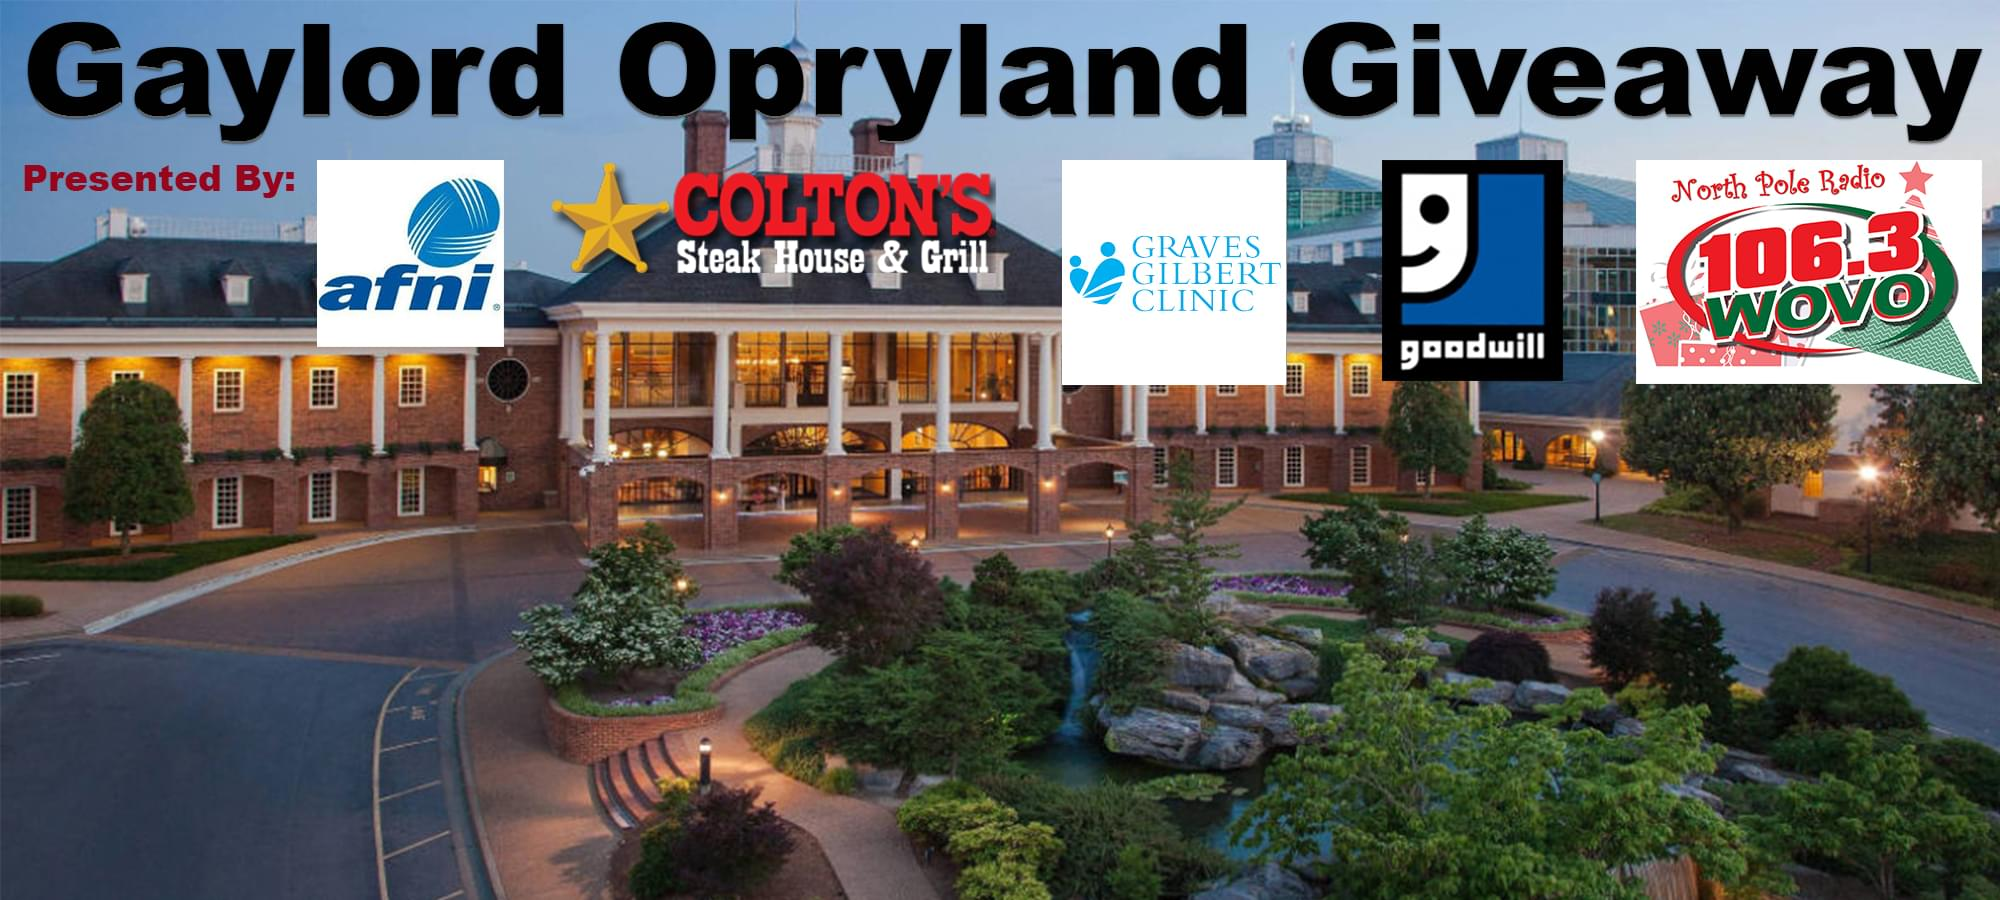 Gaylord Opryland Giveaway